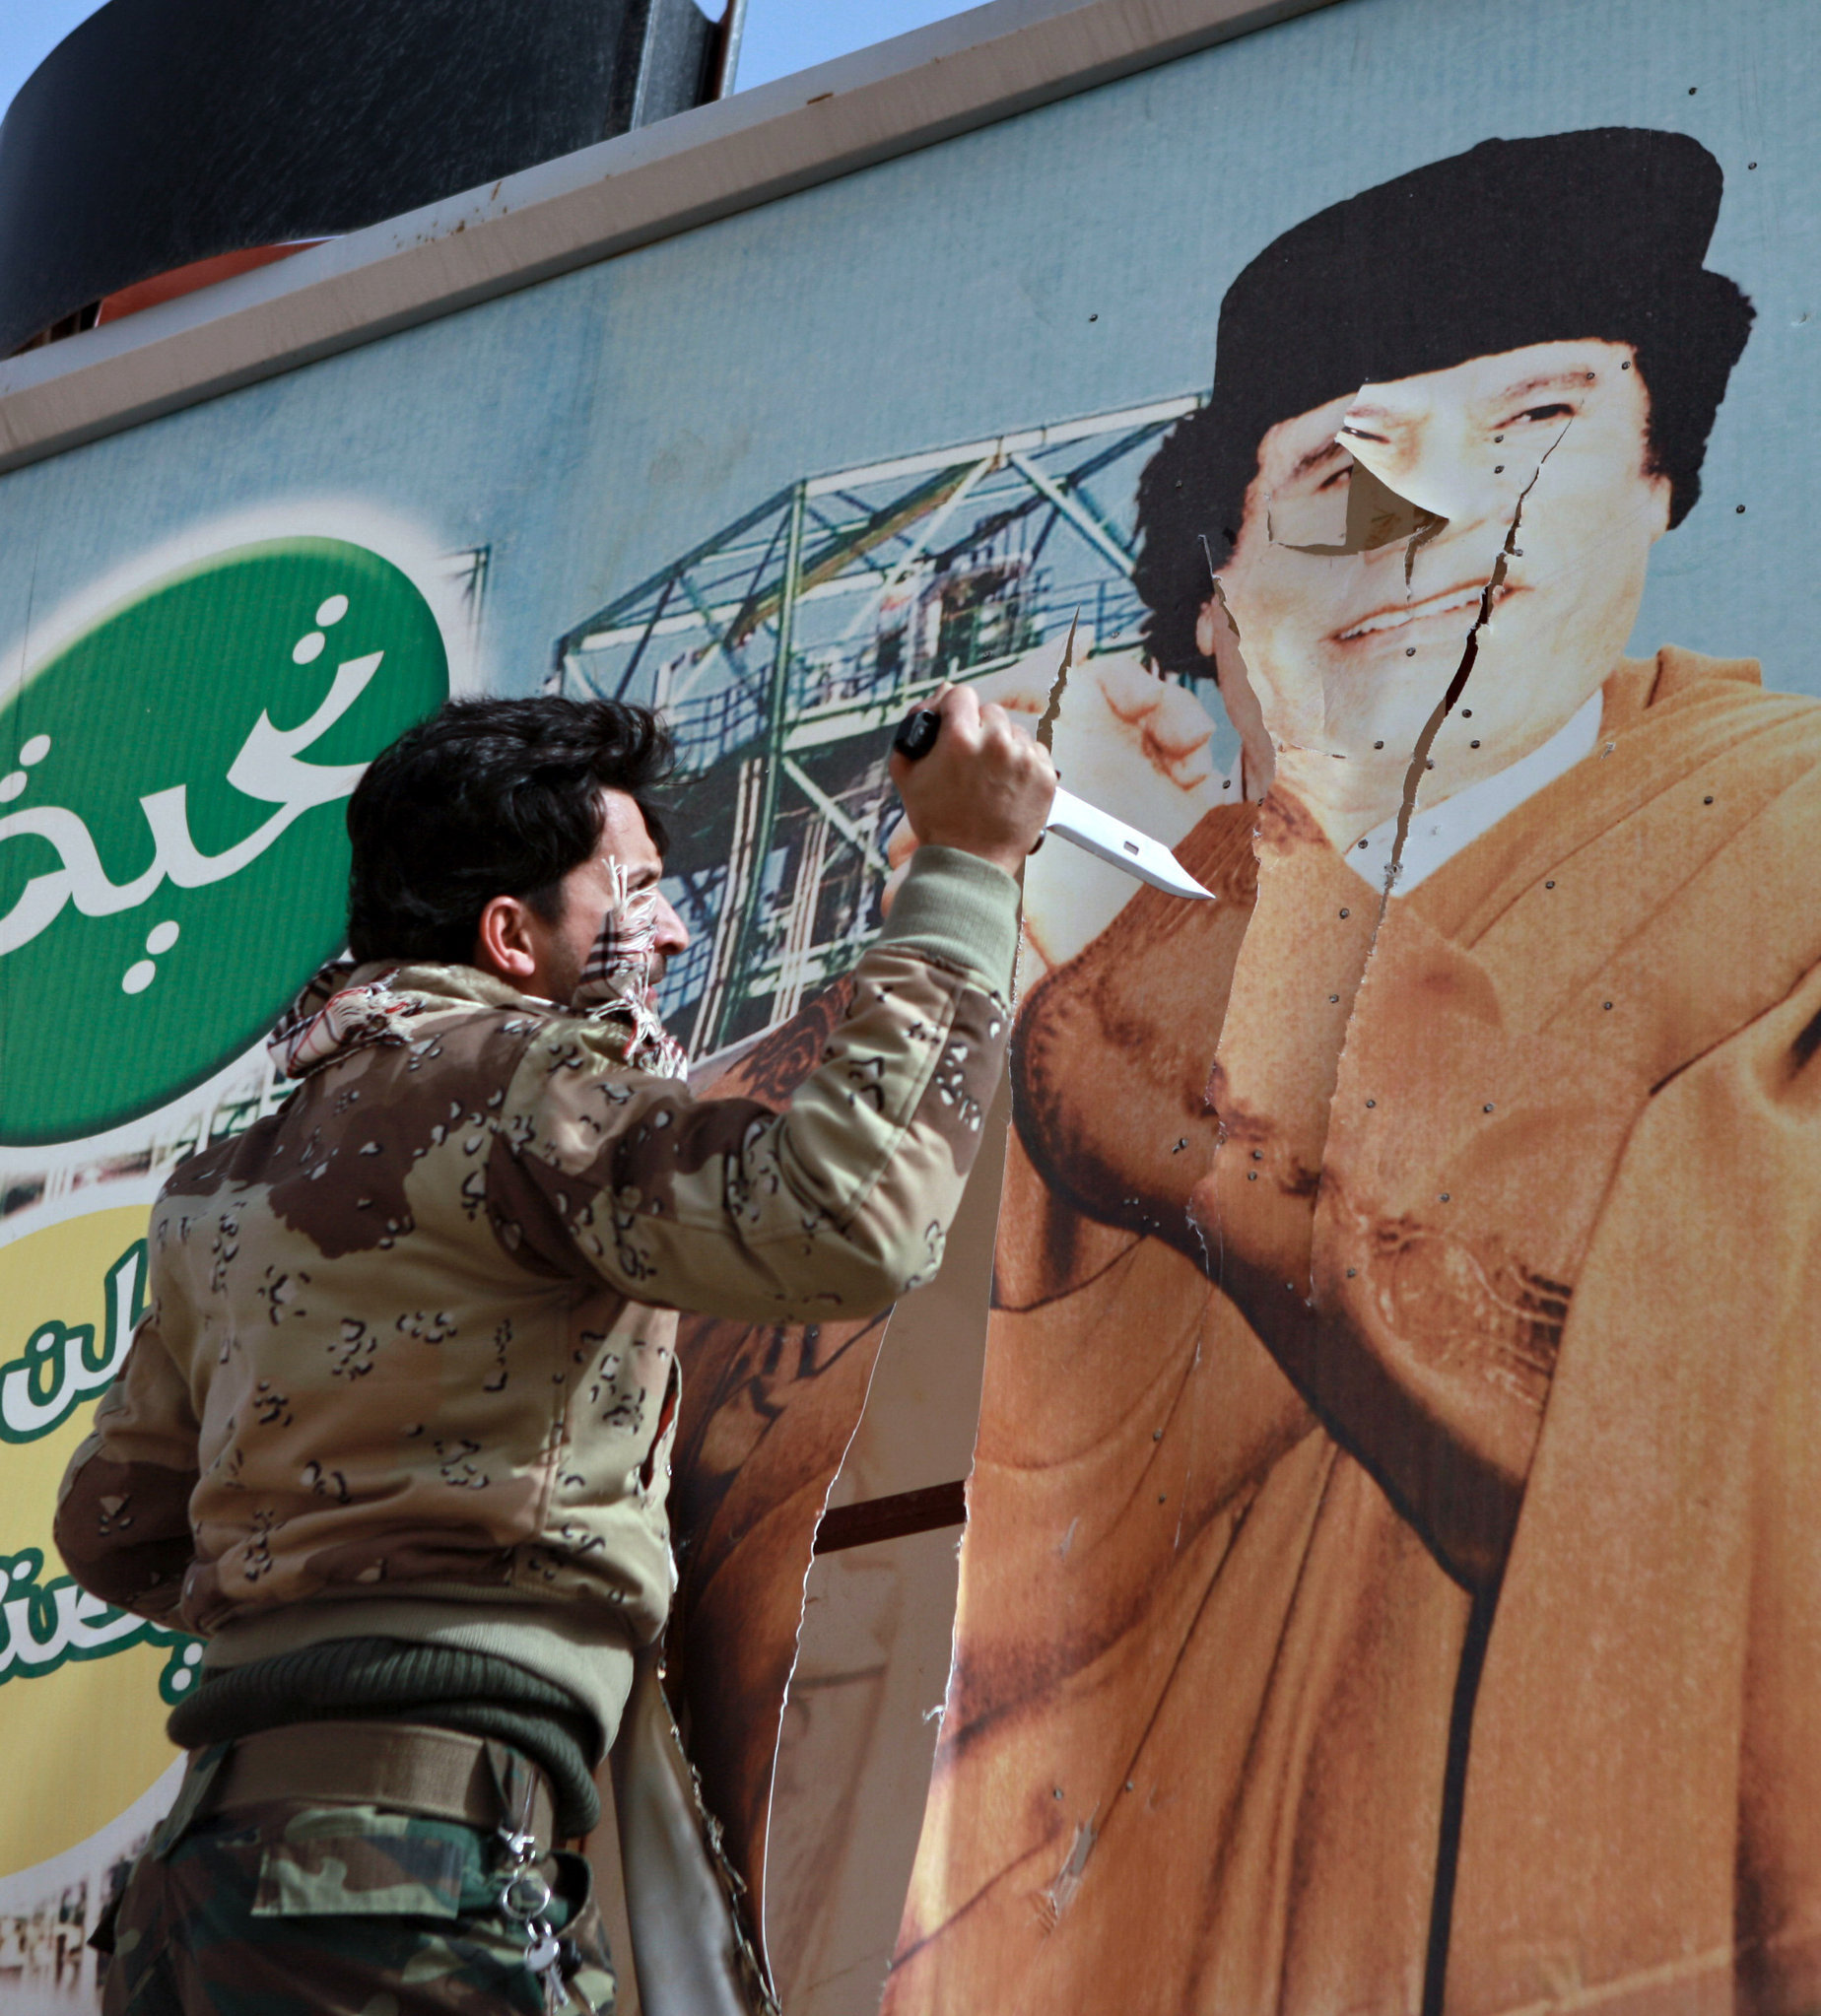 Libyan opposition supporter uses knife to cut a poster of Muammar Gaddafi in the captured rebel town of Ras Lanuf in the east of the country